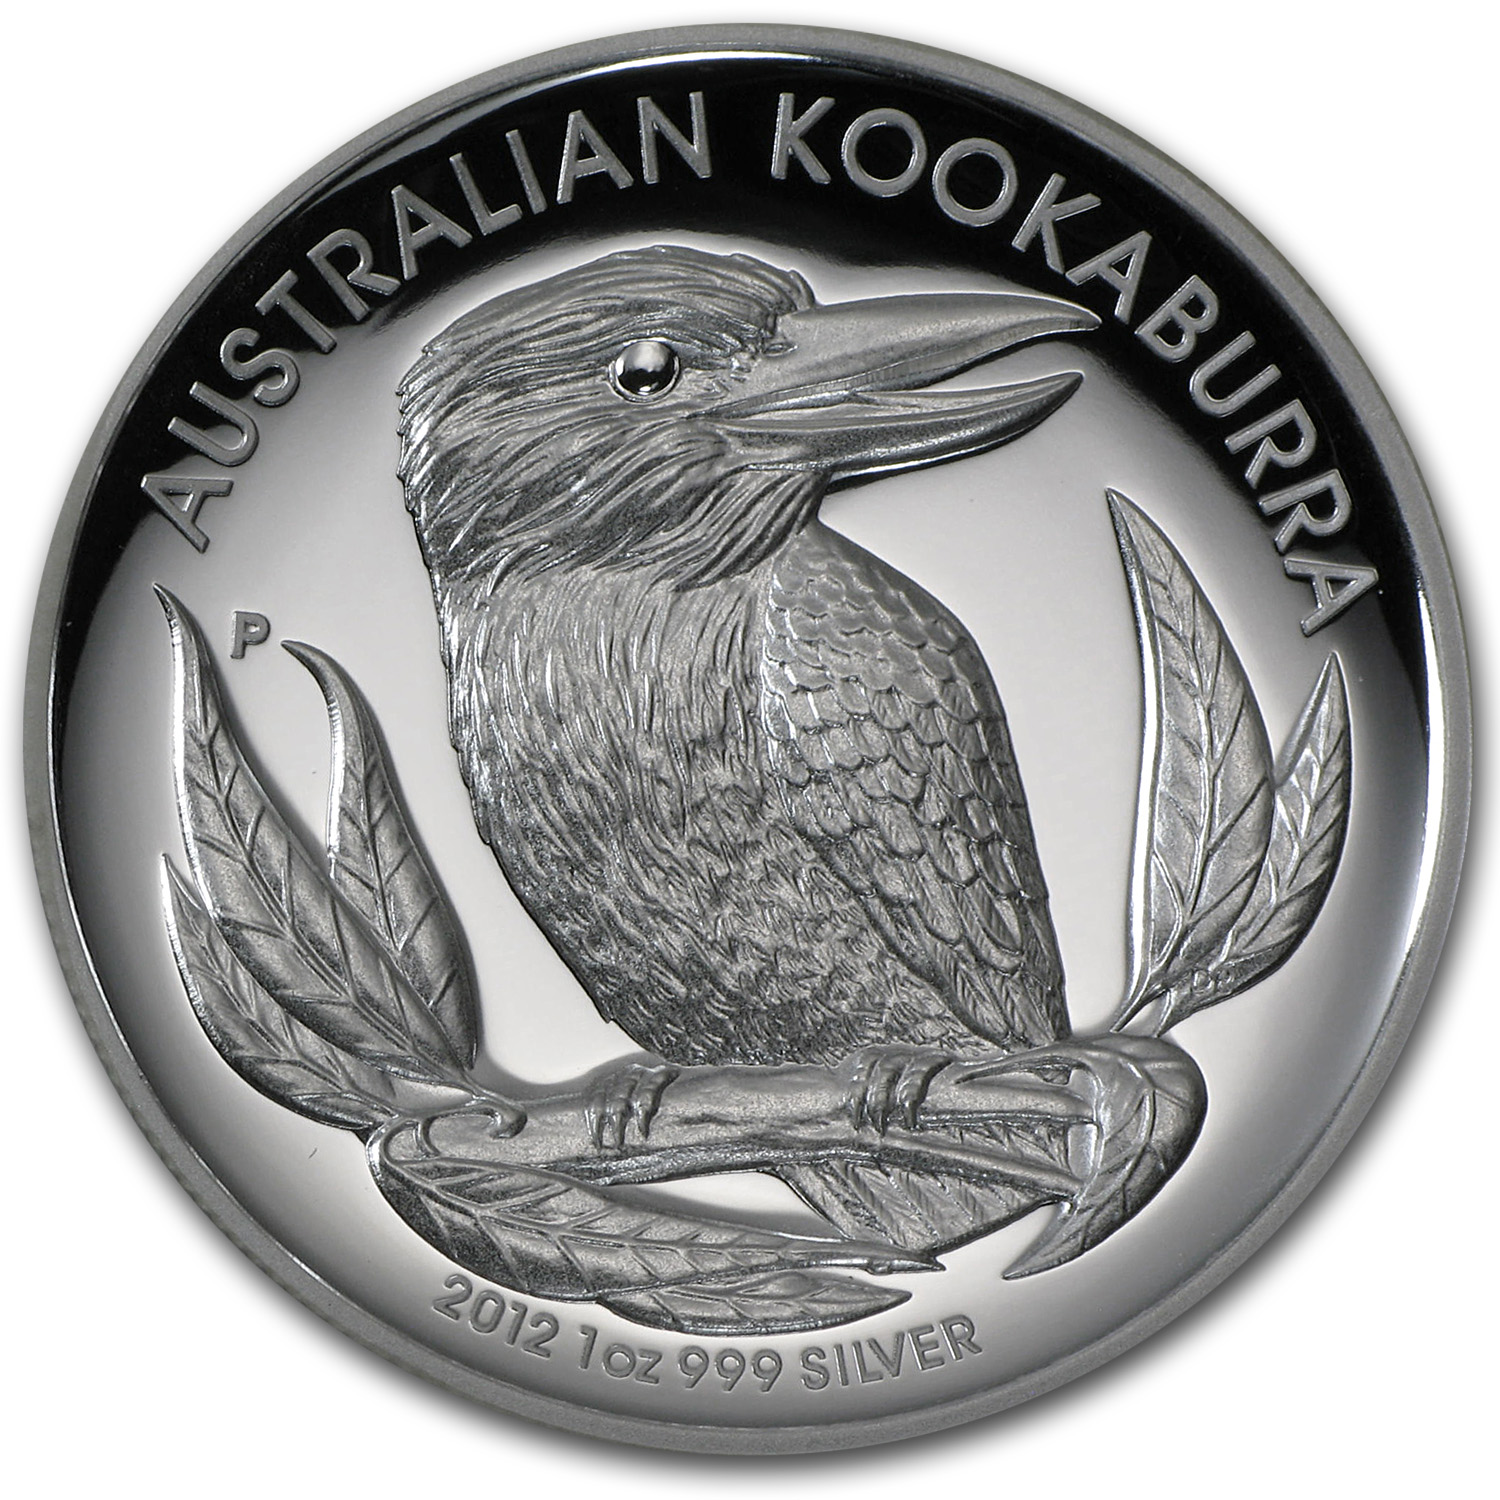 2012 Australia 1 oz Silver Kookaburra Proof (High Relief)